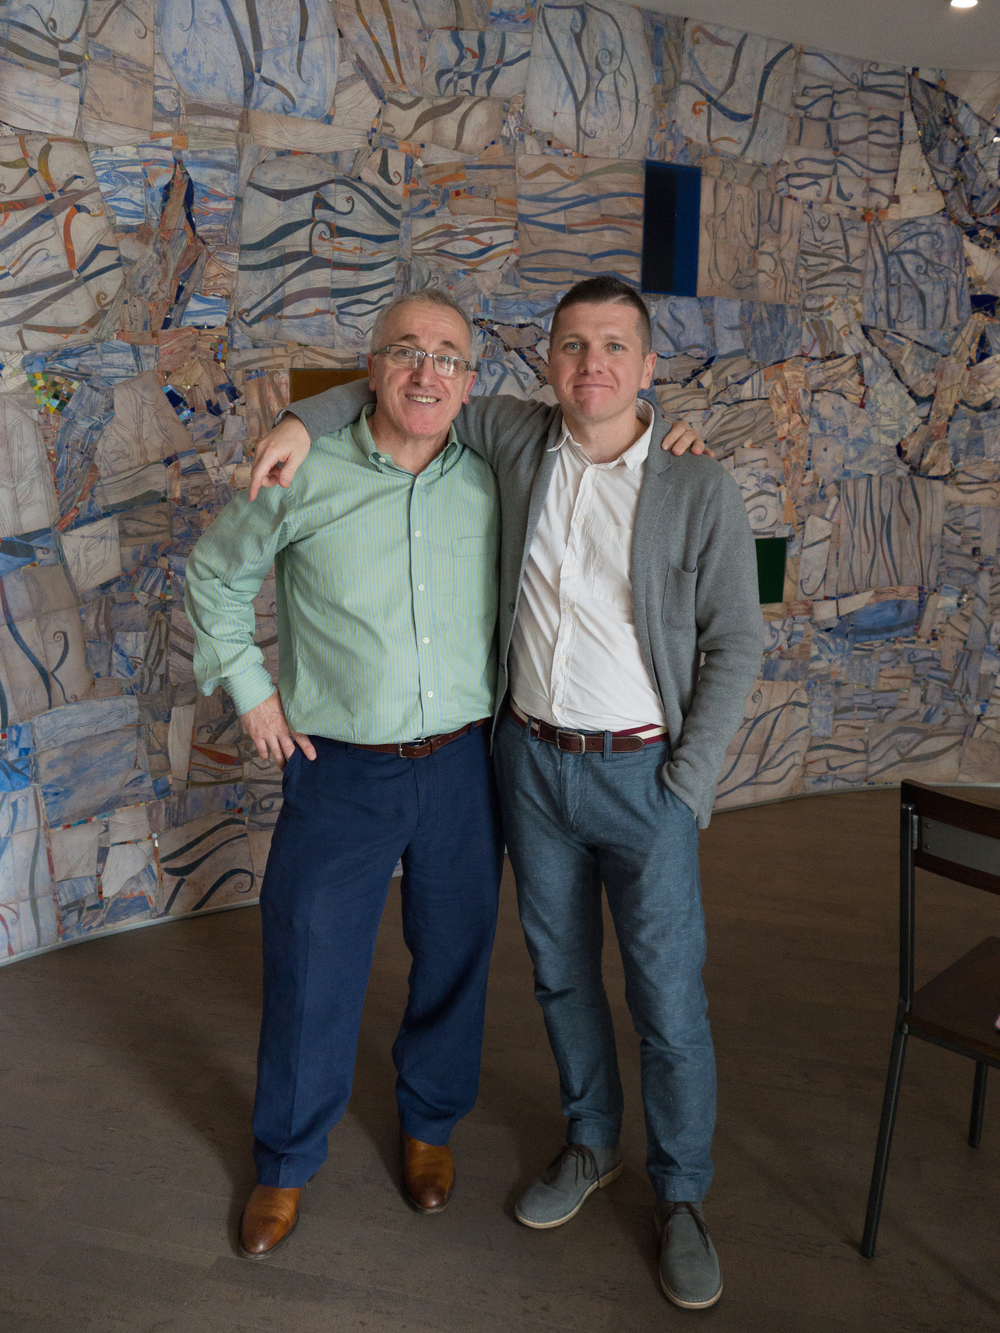 With Timur Akhriev, creative partner on the Erlanger mosaic project.